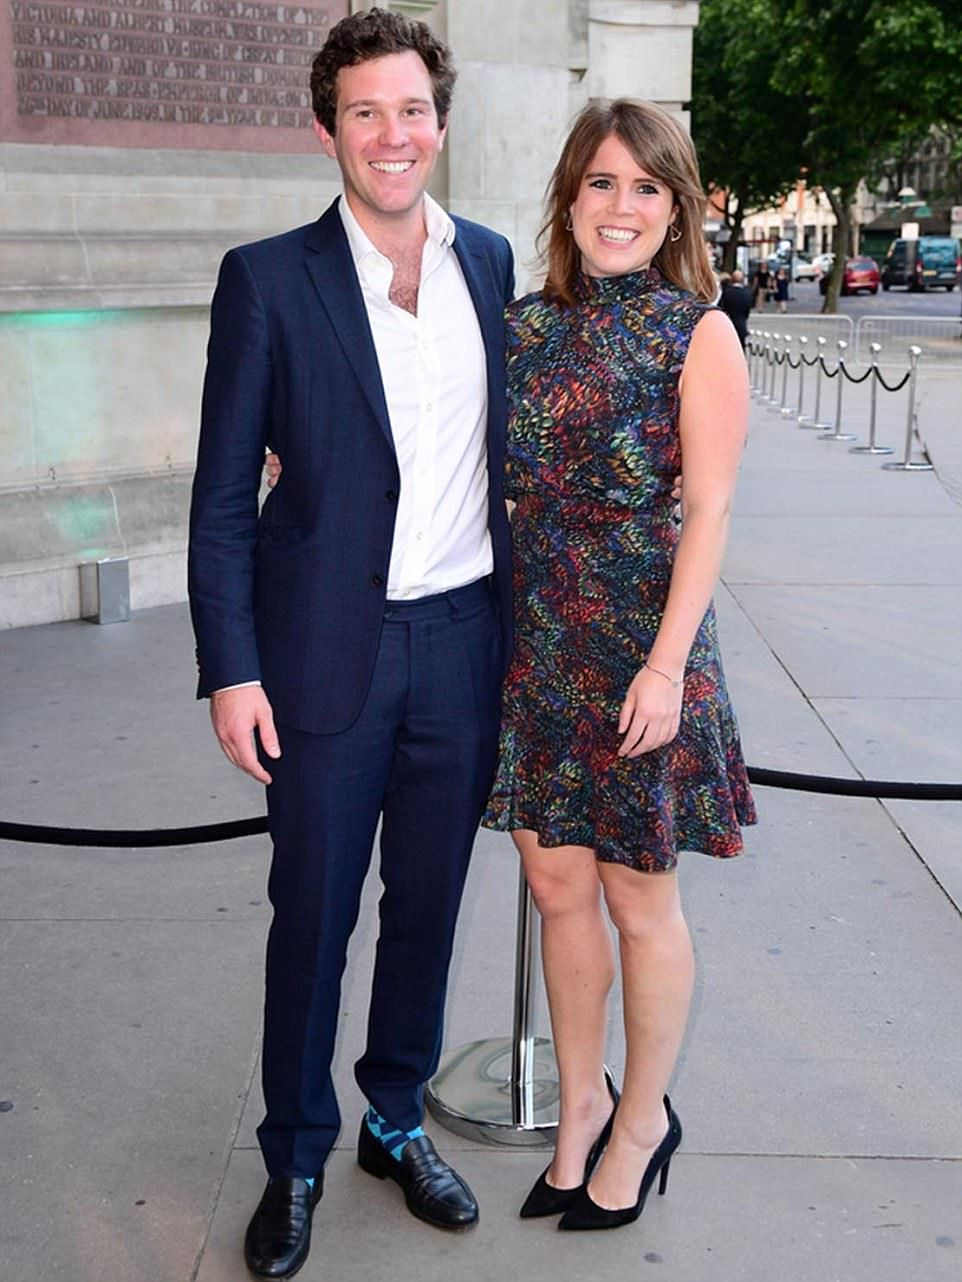 Princess Eugenie is engaged to Jack Brooksbank (With